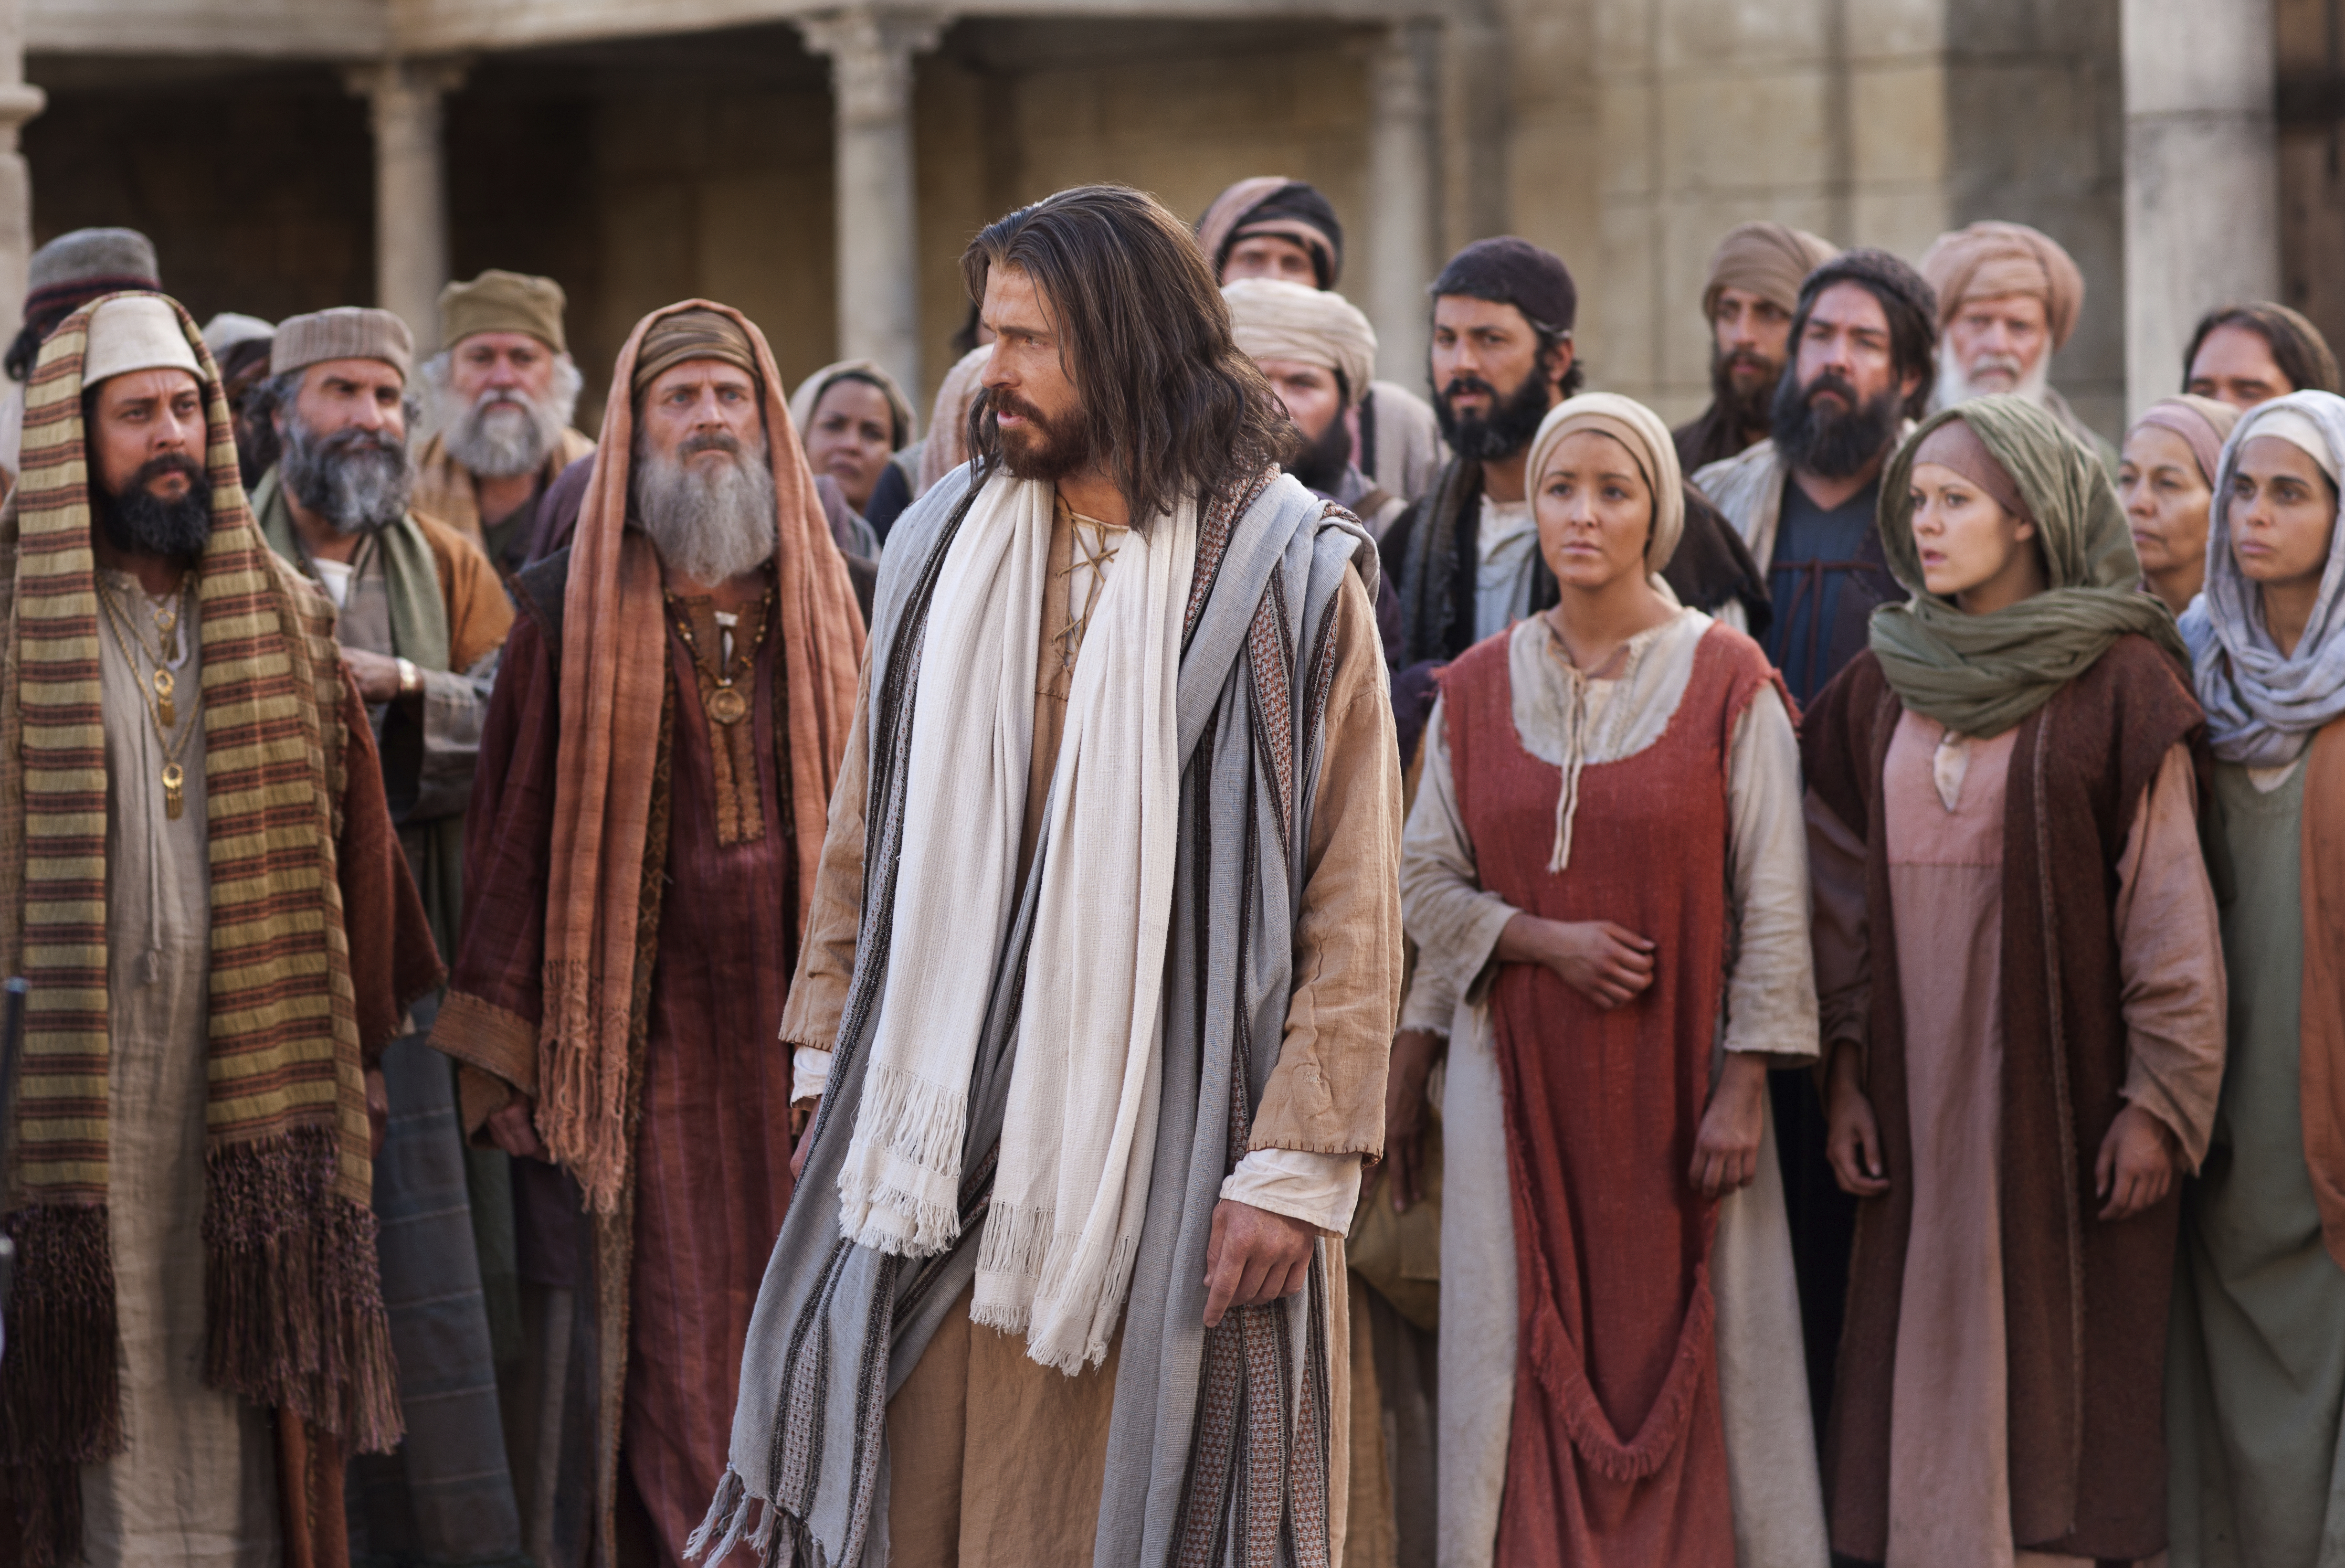 The Pharisees question Jesus and declare that His record is not true.